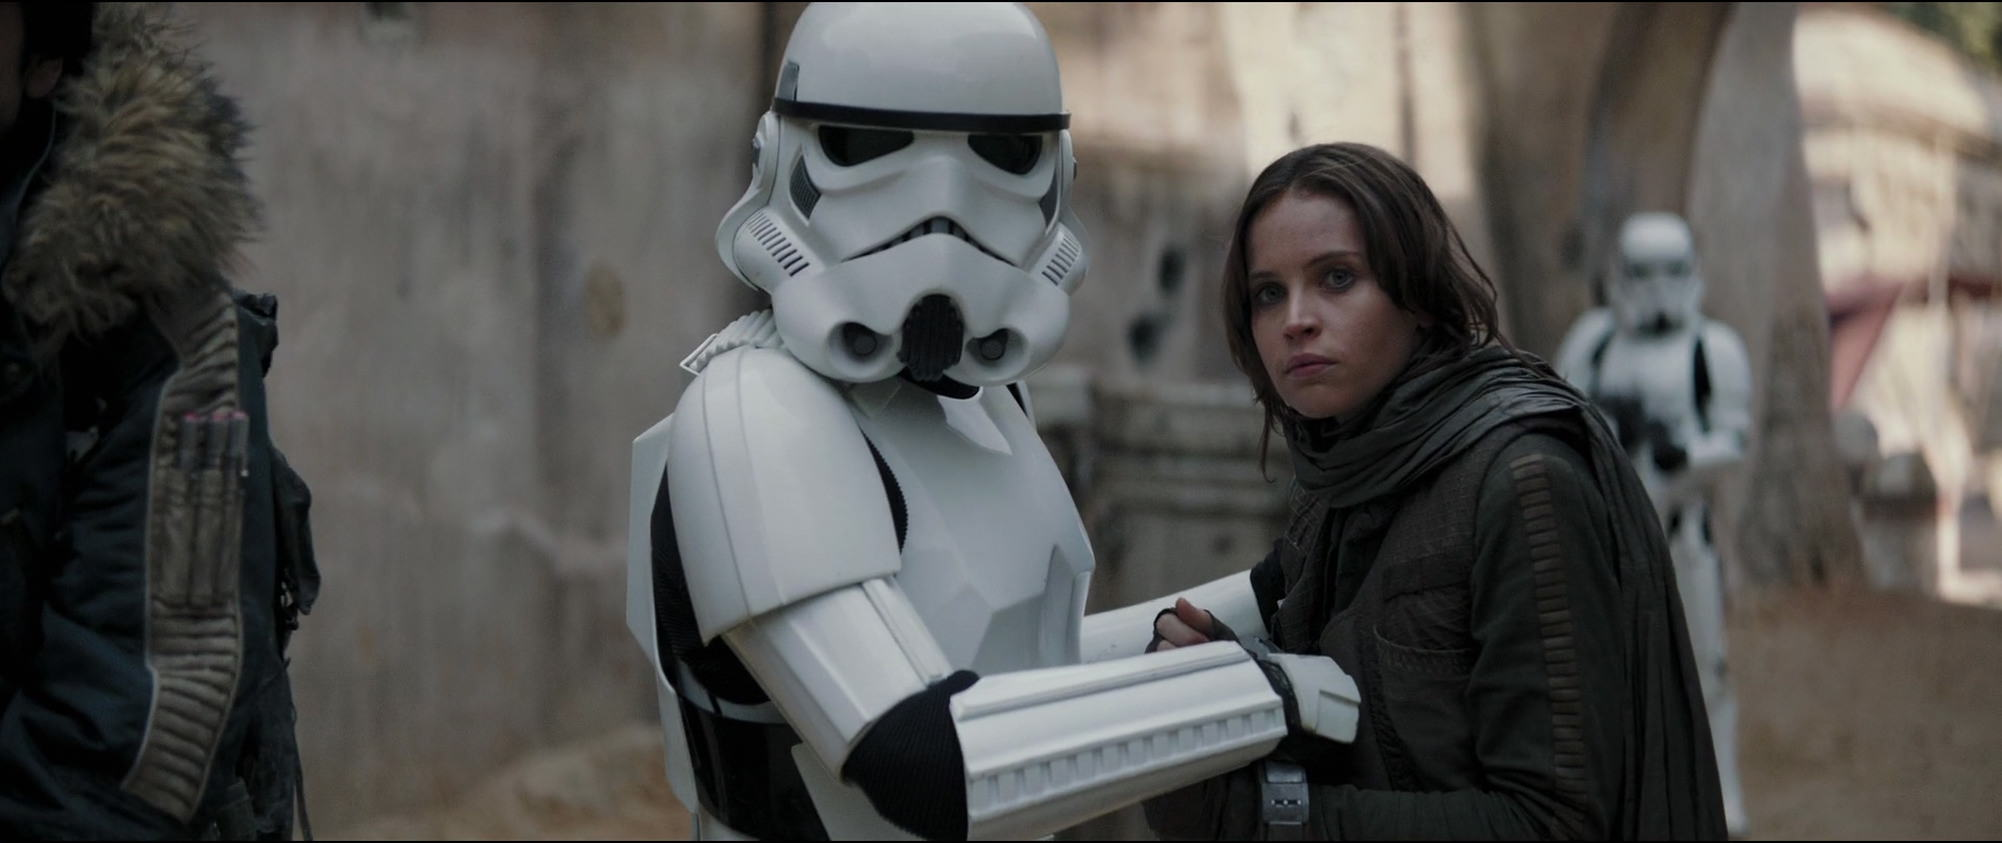 picload.org/image/ddlwwpwl/rogue-one-movie-screencaps.com.jpg